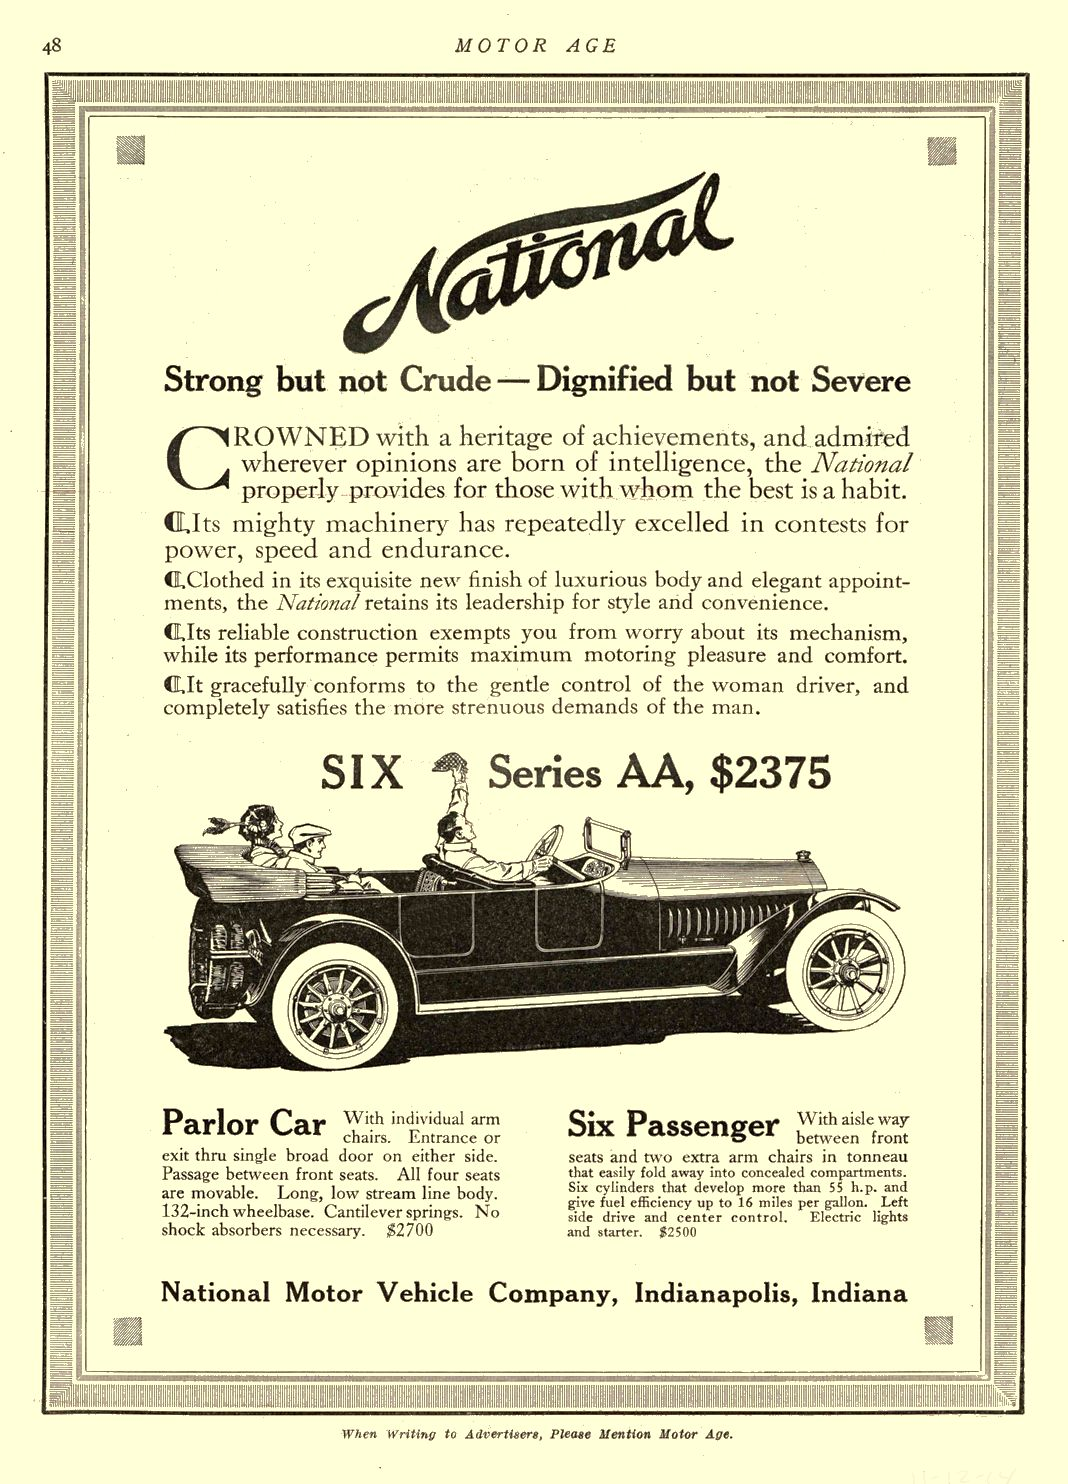 1914 11 12 NATIONAL Strong but not Crude — Dignified but not Severe National Motor Vehicle Company Indianapolis, IND MOTOR AGE November 12, 1914 8.5″x12″ page 48